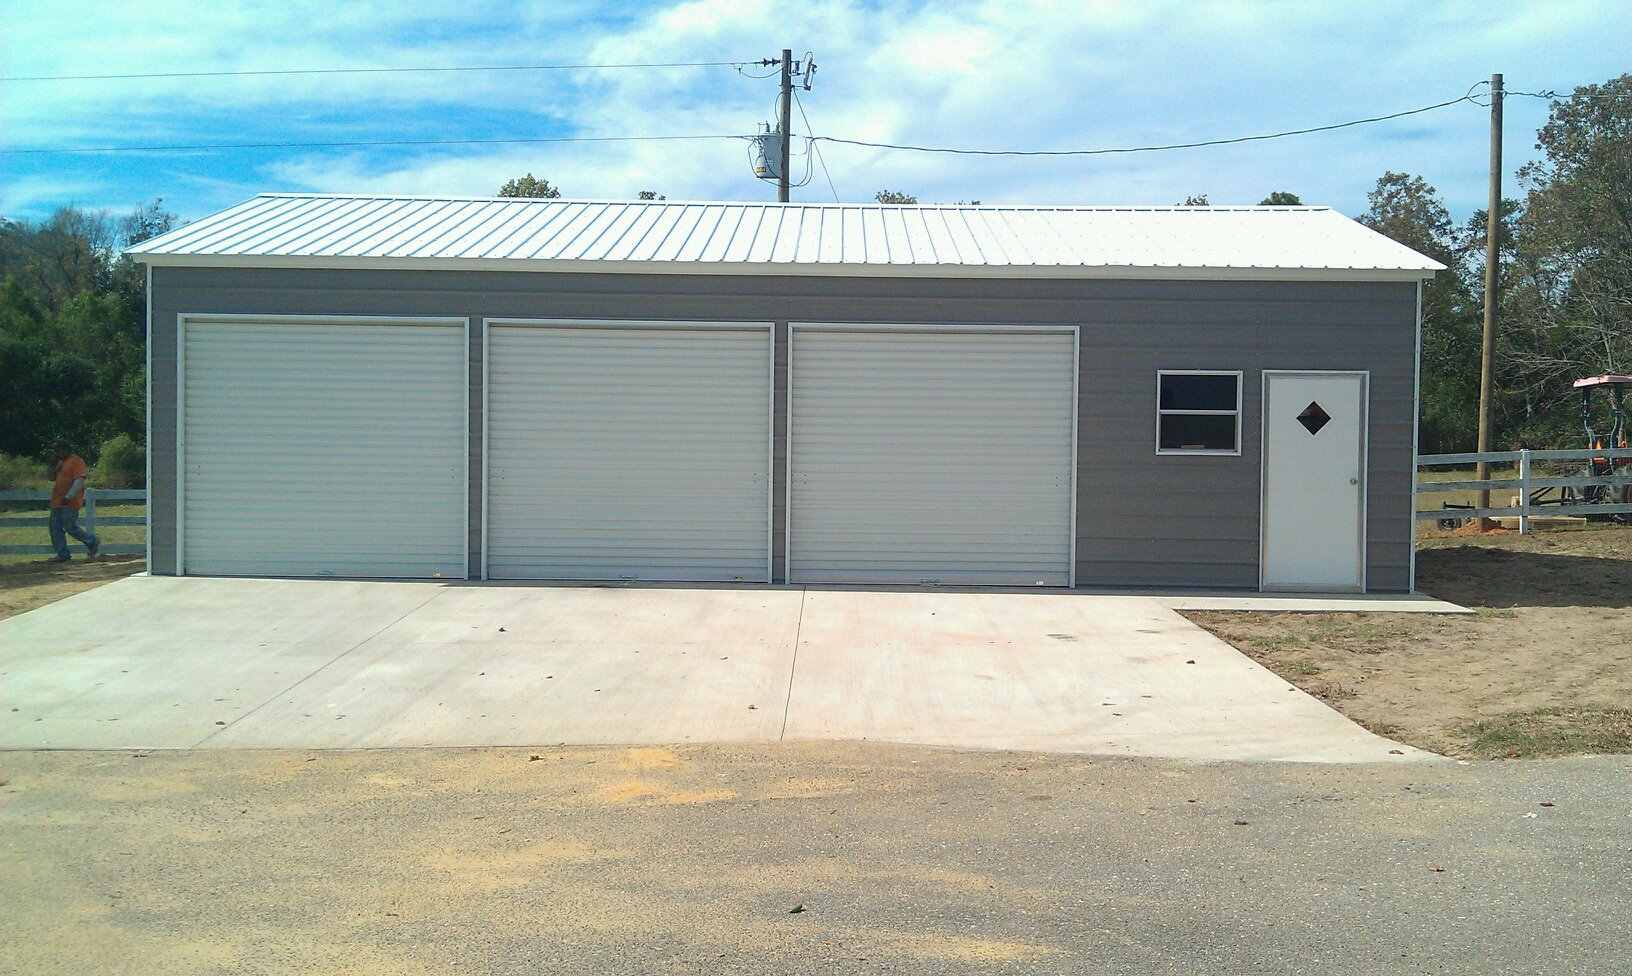 Tennessee tn metal garages barns sheds and buildings 3 car metal garage kits